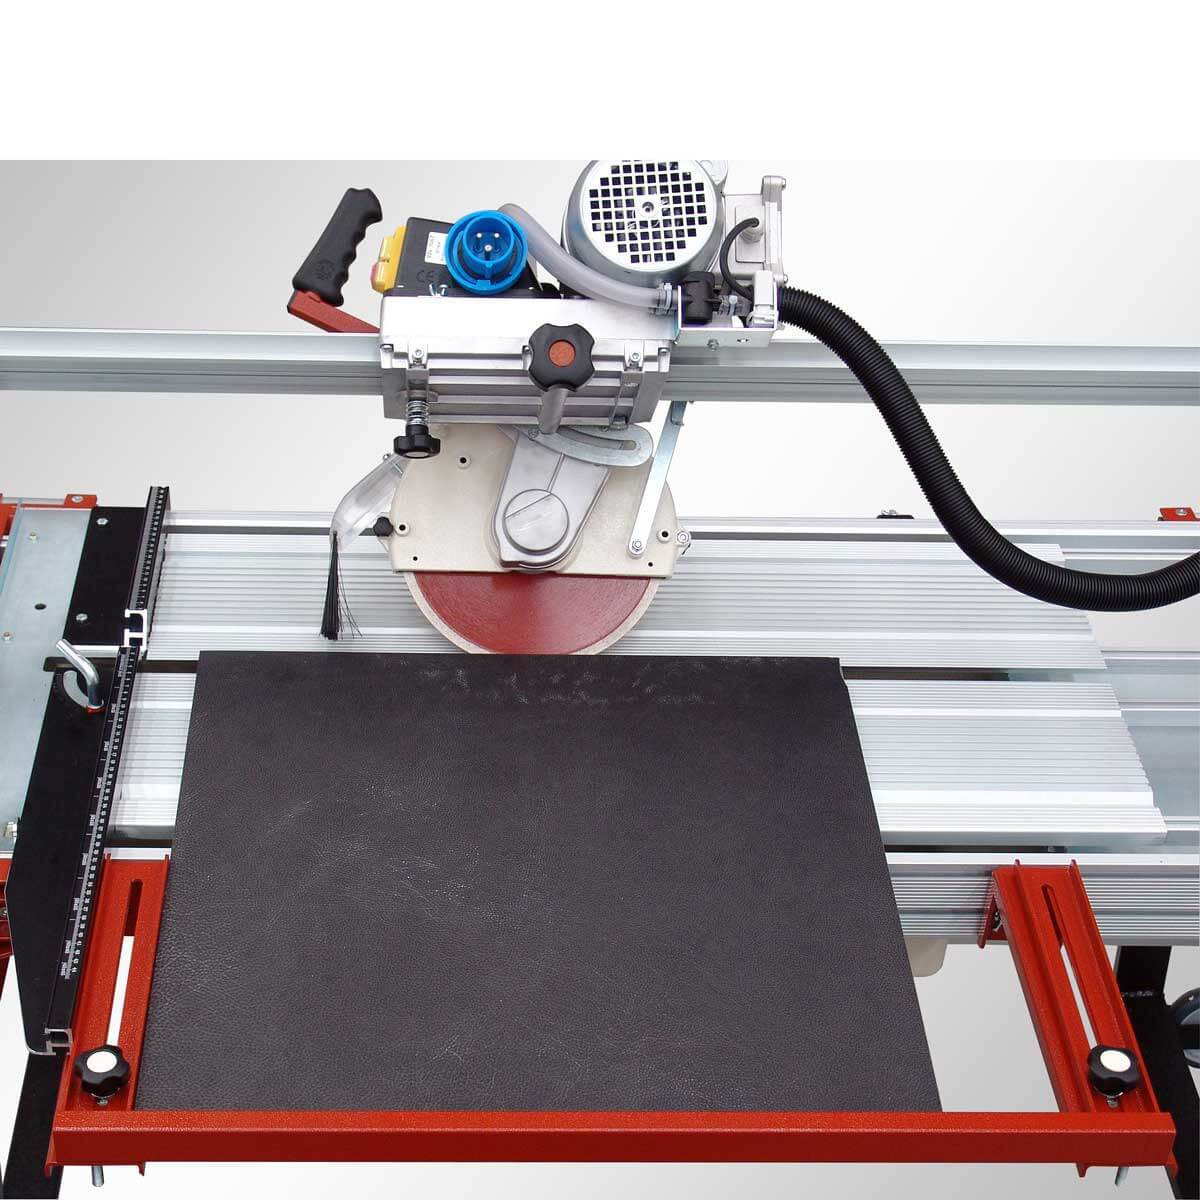 Raimondi rail saw cutting 45 degree angle with extension side square